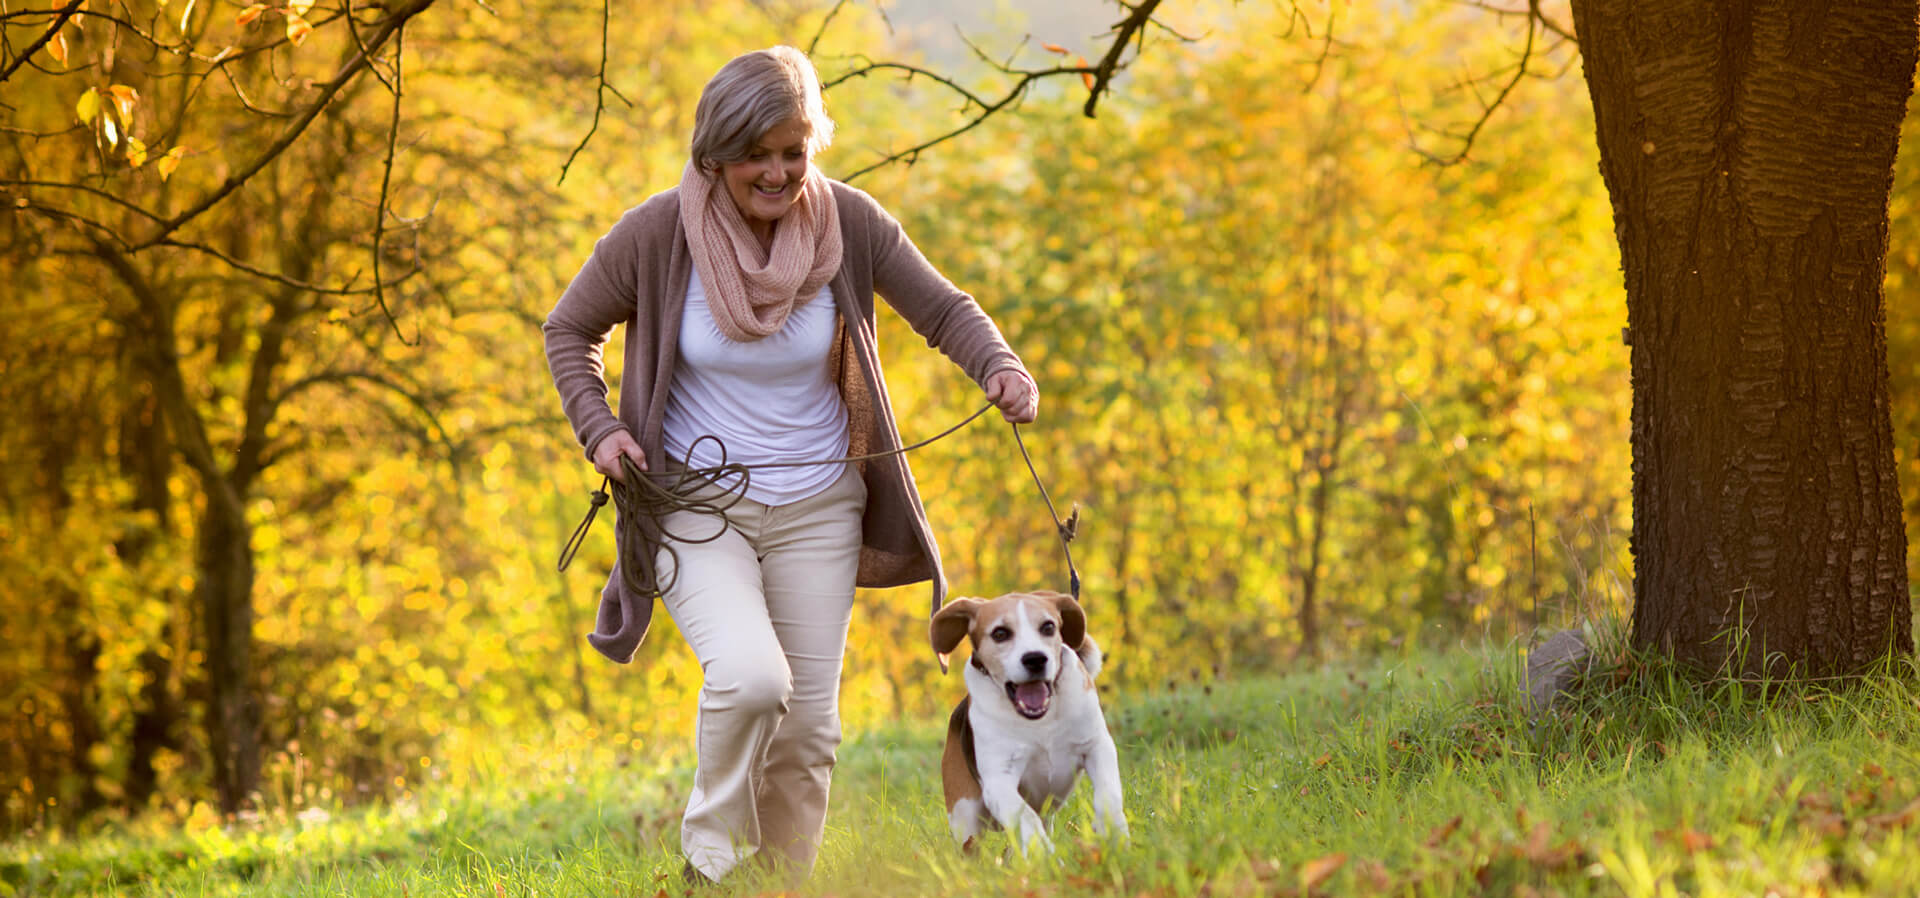 A senior woman runs with her dog in a pleasant fall scene with trees and grass.